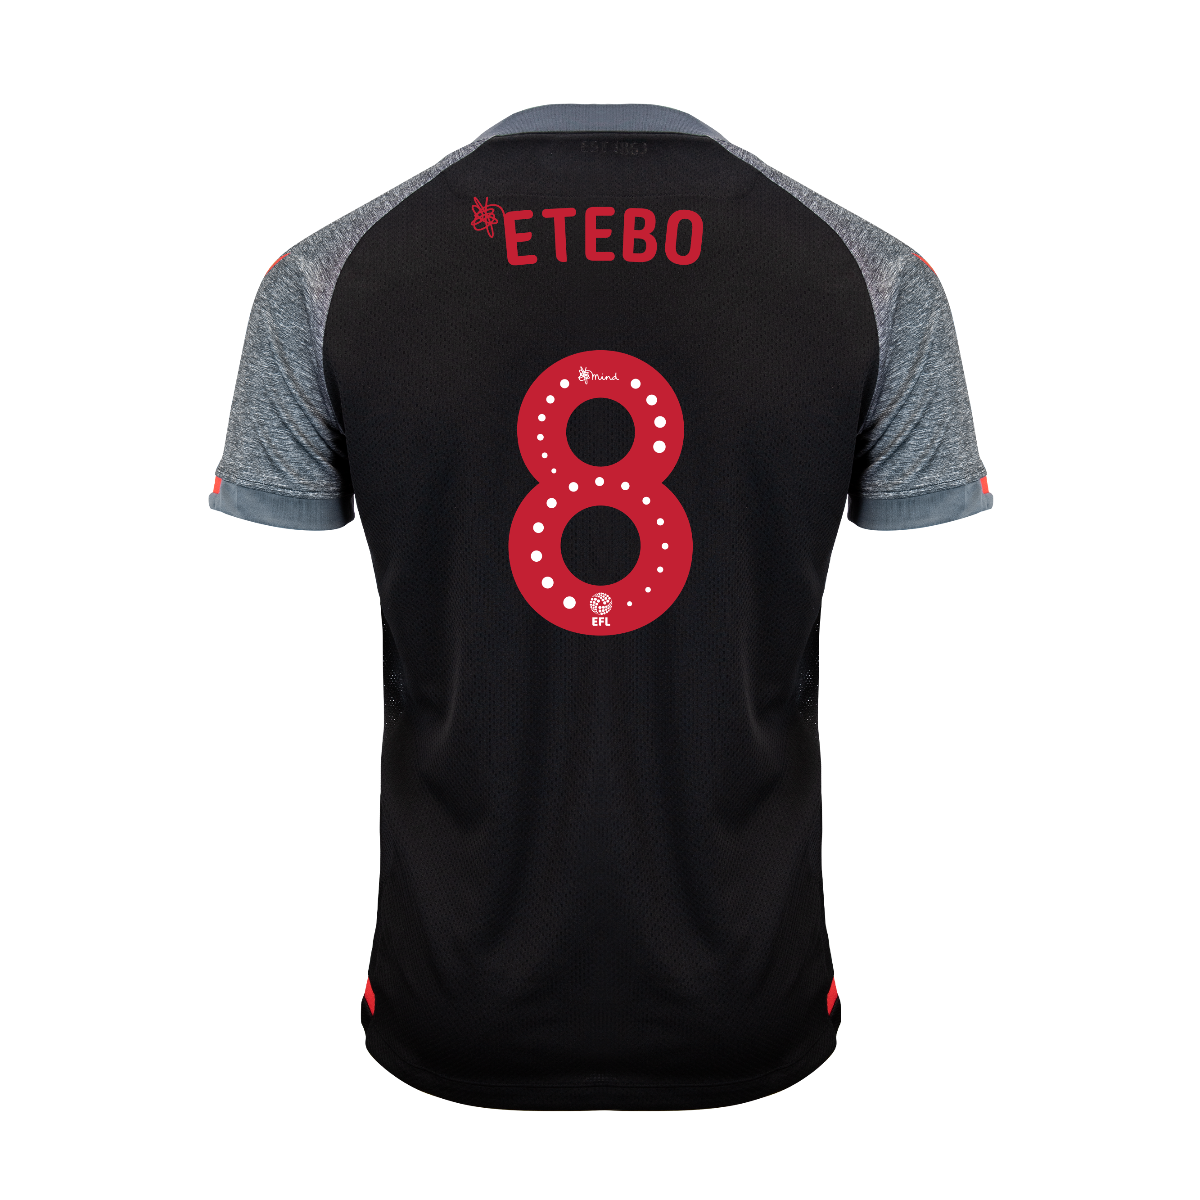 2019/20 Adult Away SS Shirt - Etebo